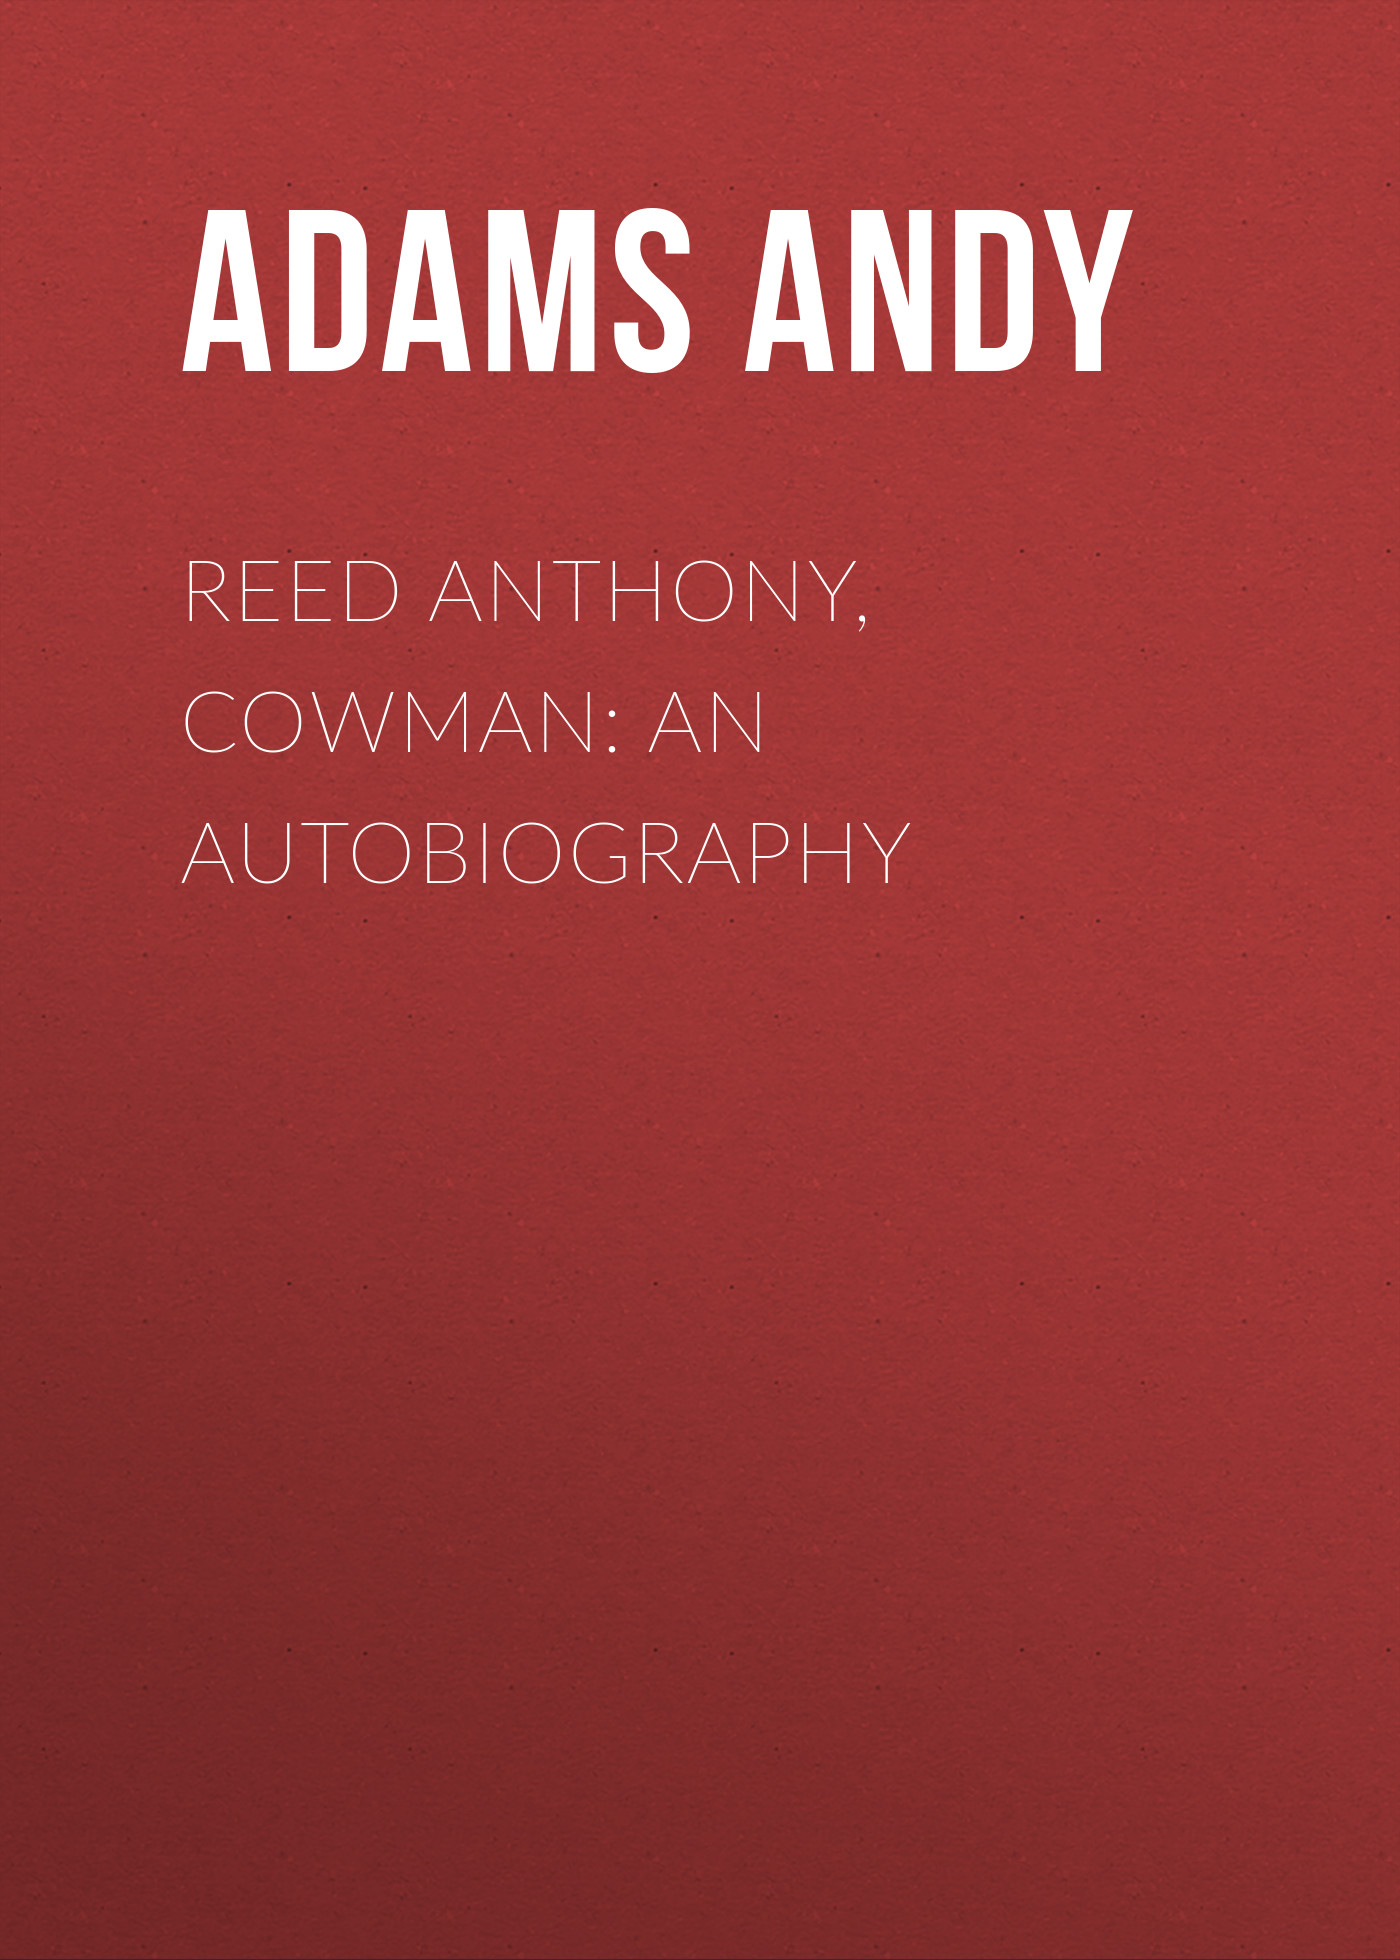 Adams Andy Reed Anthony, Cowman: An Autobiography цена и фото